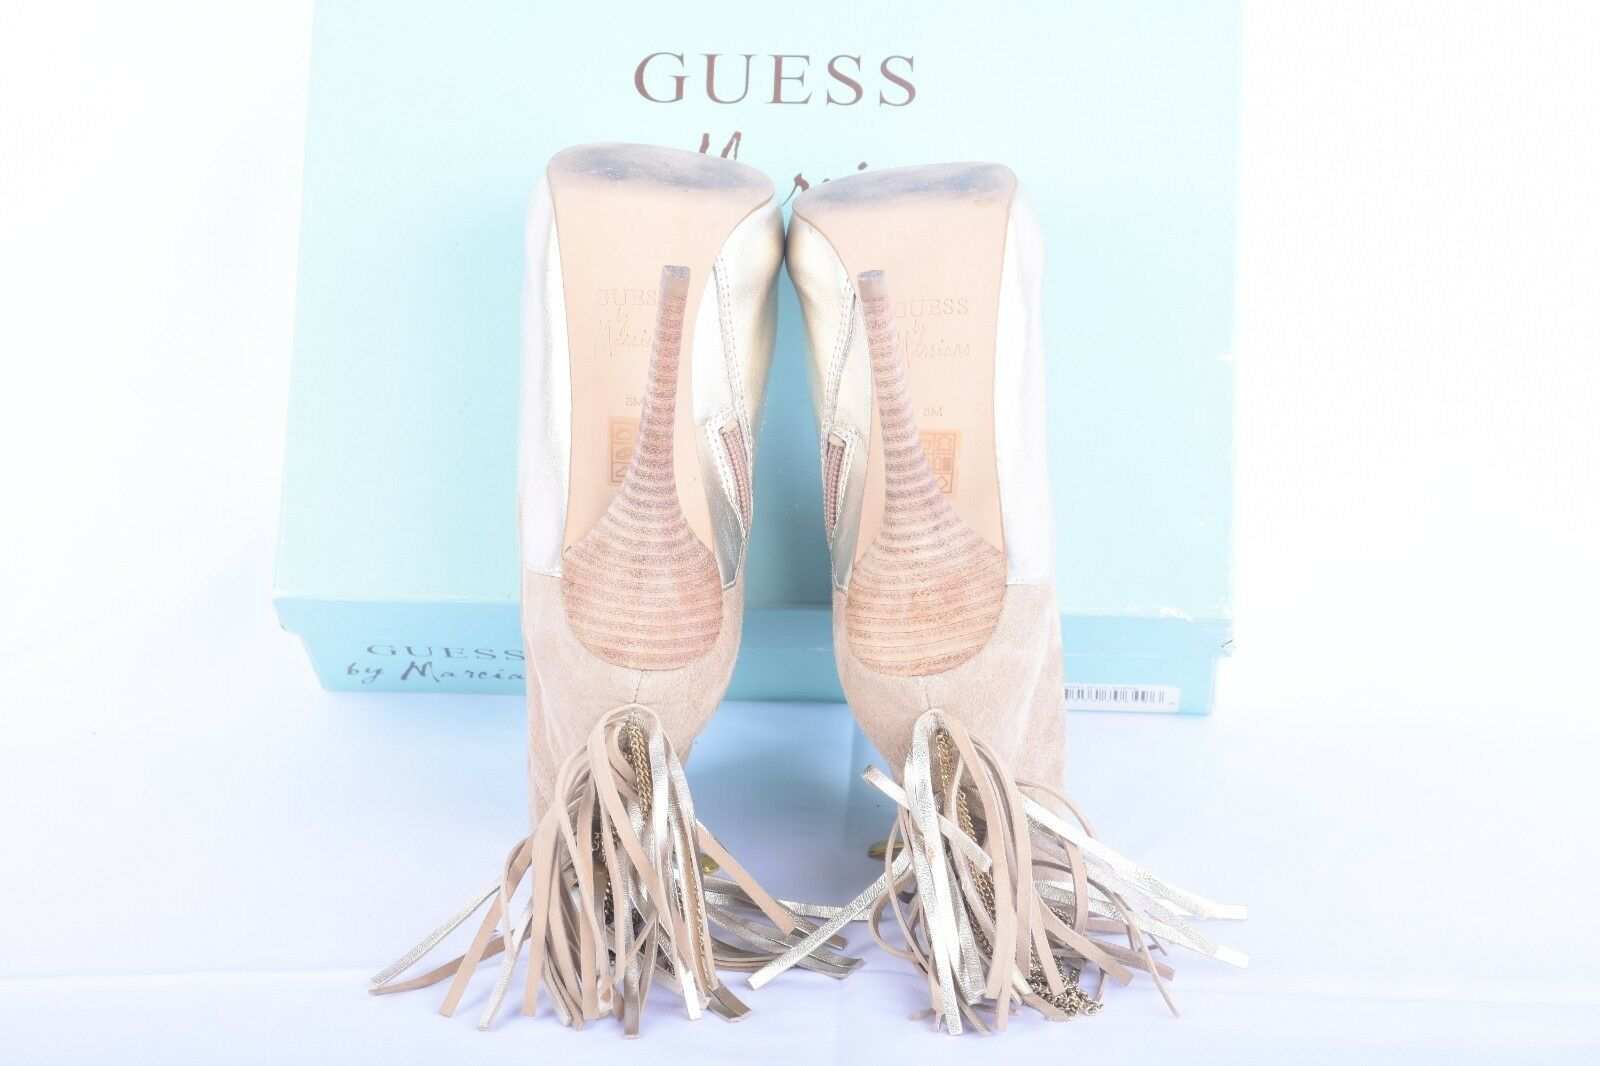 Used Guess High Heal Sandals gold Leather Leather Leather Size 36 US SELLER c026eb